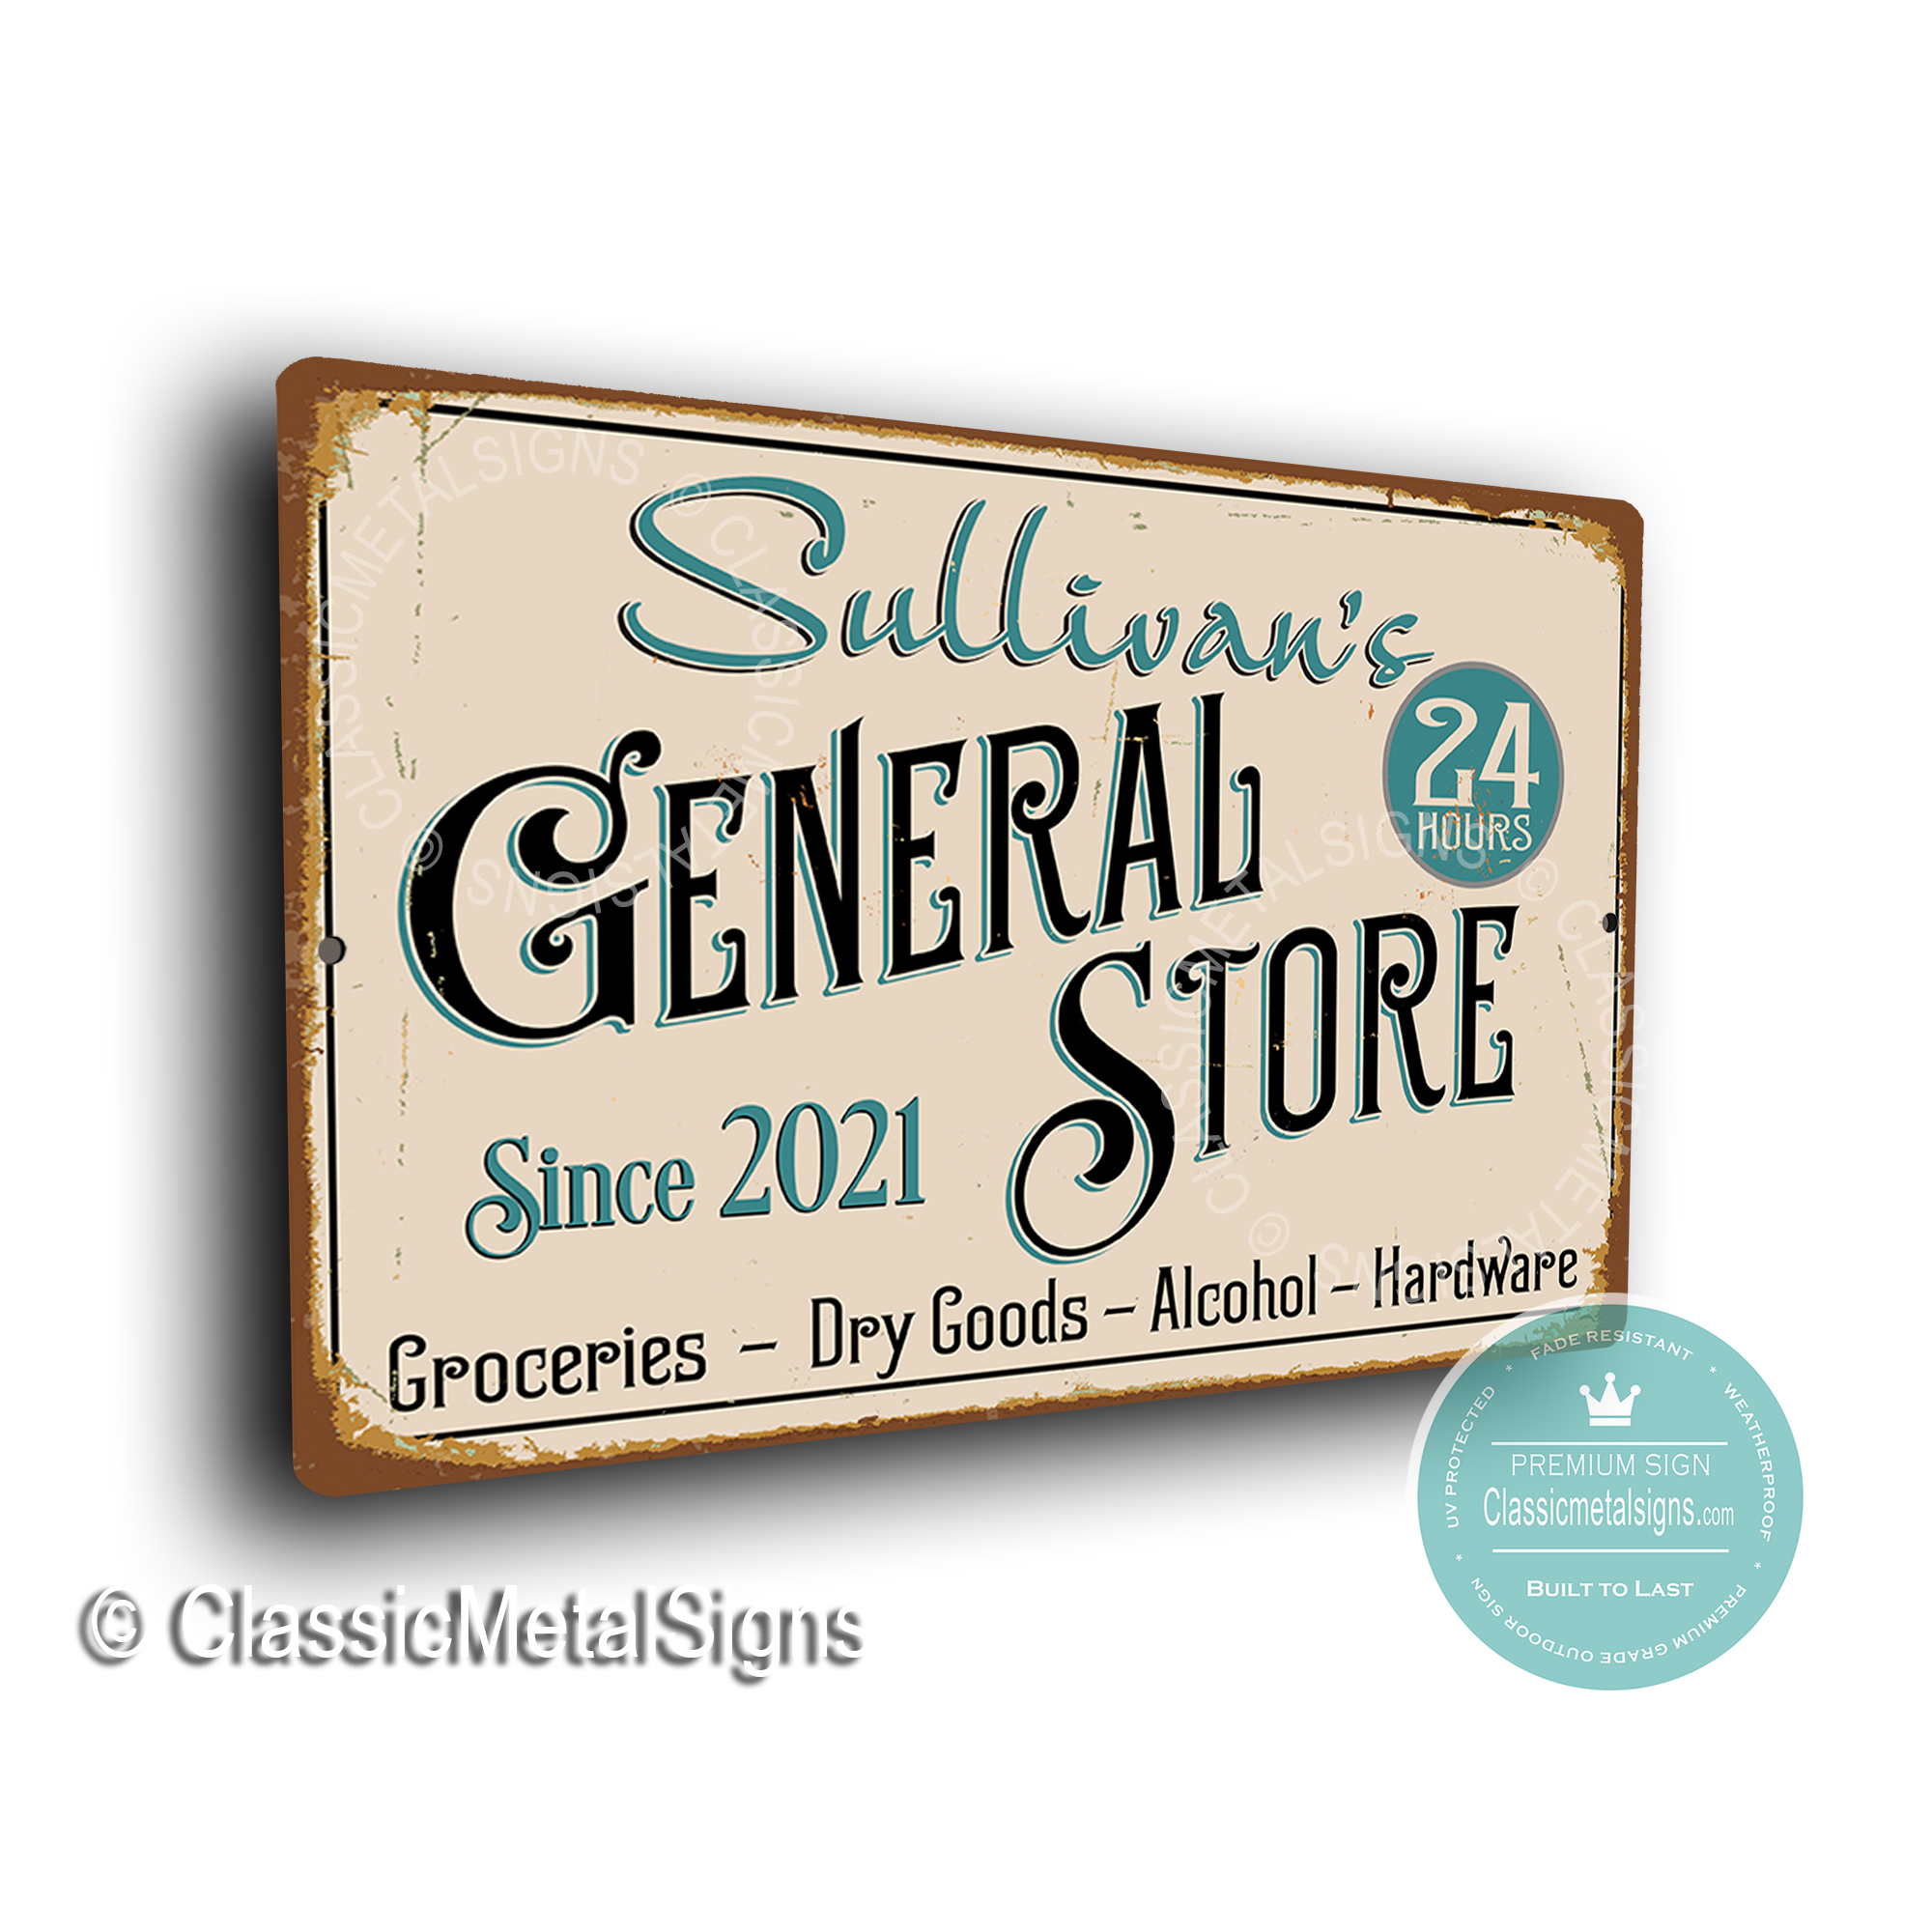 General Store Signs